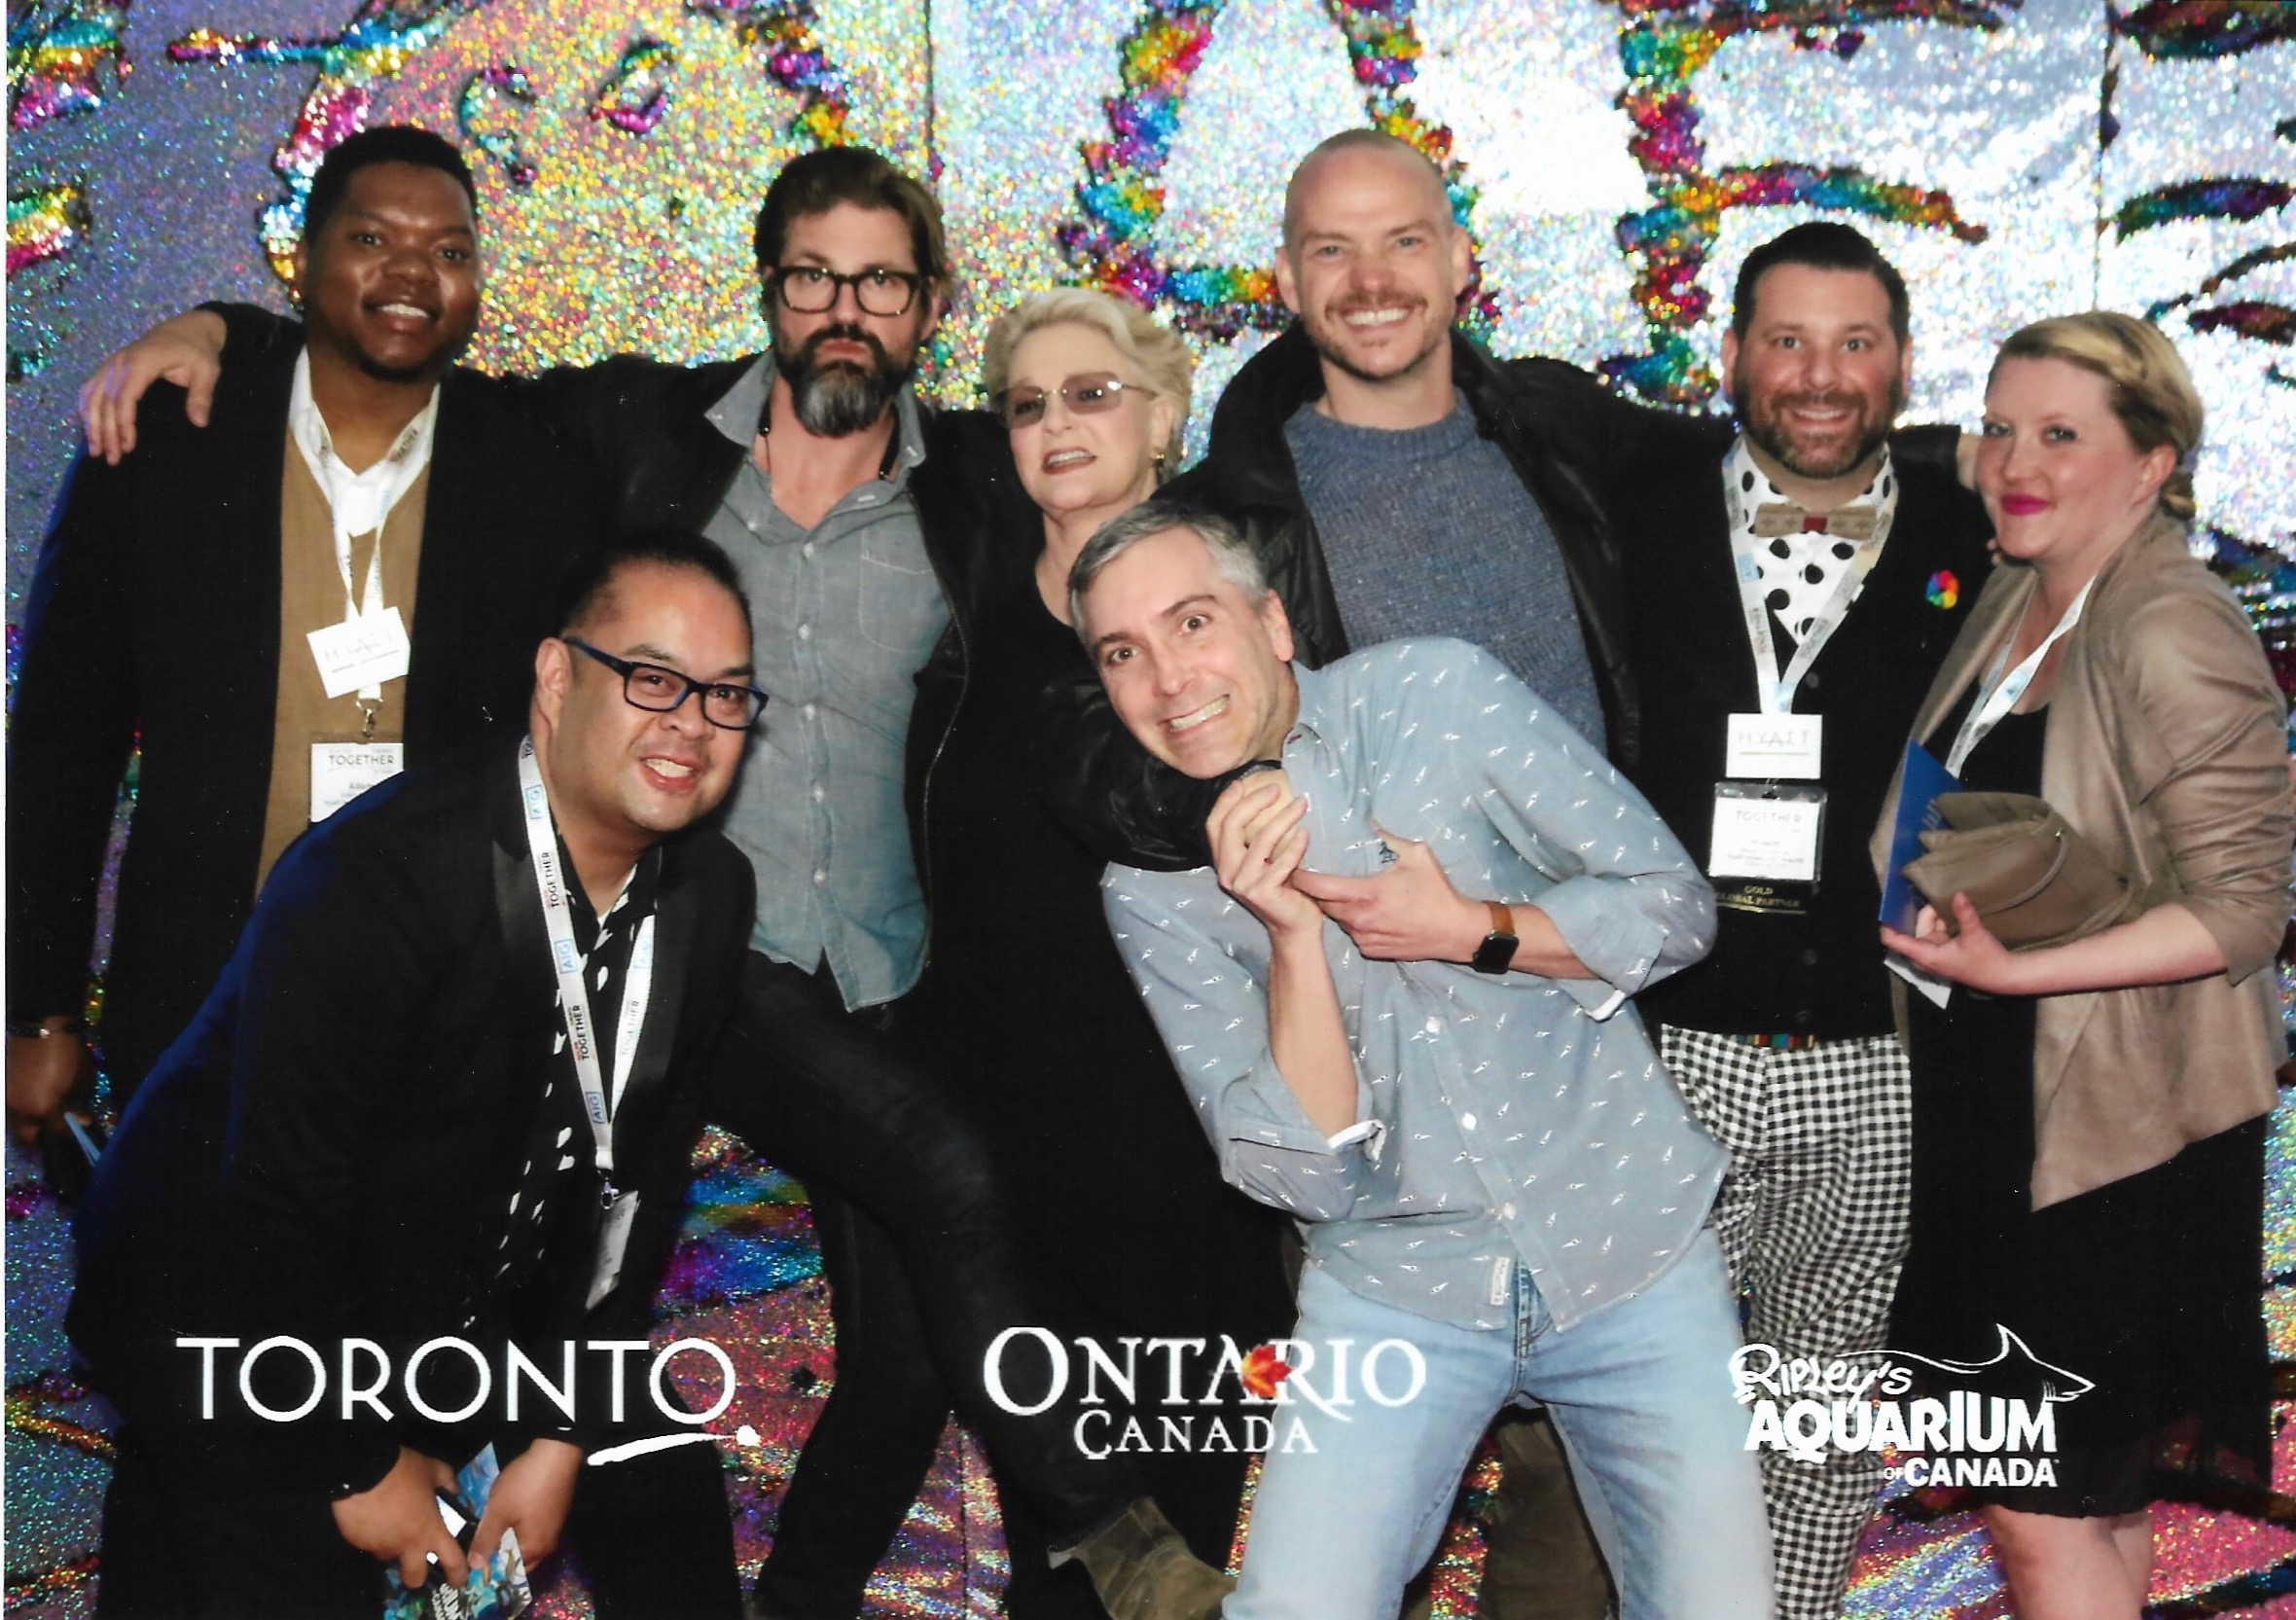 LGBT Travel Agent Convention in Toronto w/ fans 5/18